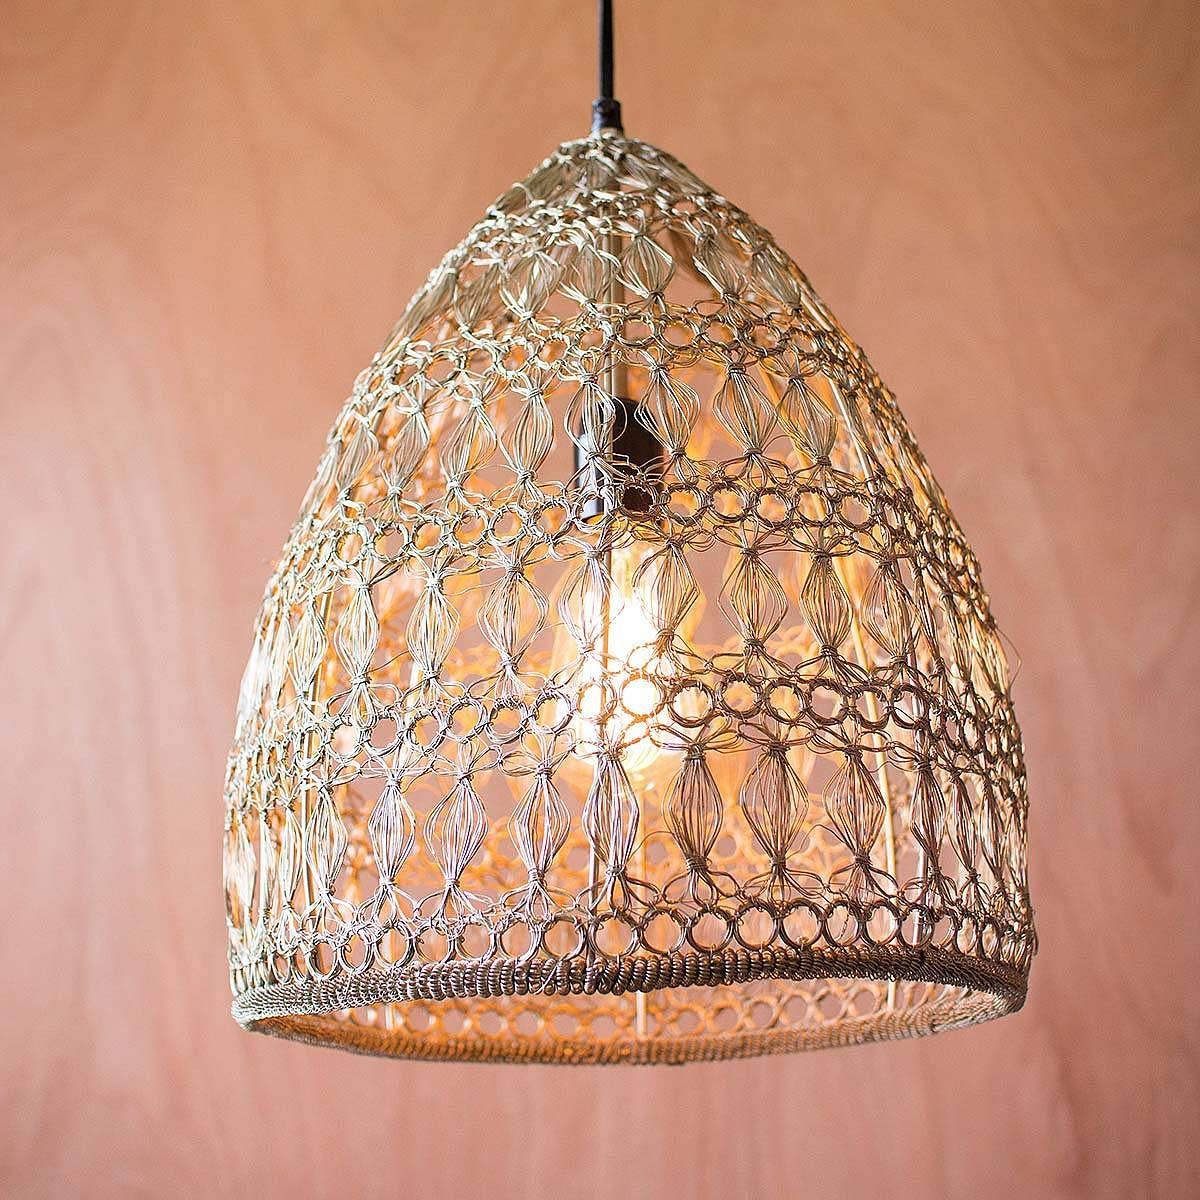 Crochet Wire Pendant Lamp | Pendant Lamp, Handmade, Metal Wire Pertaining To Corded Pendant Lights (View 1 of 15)